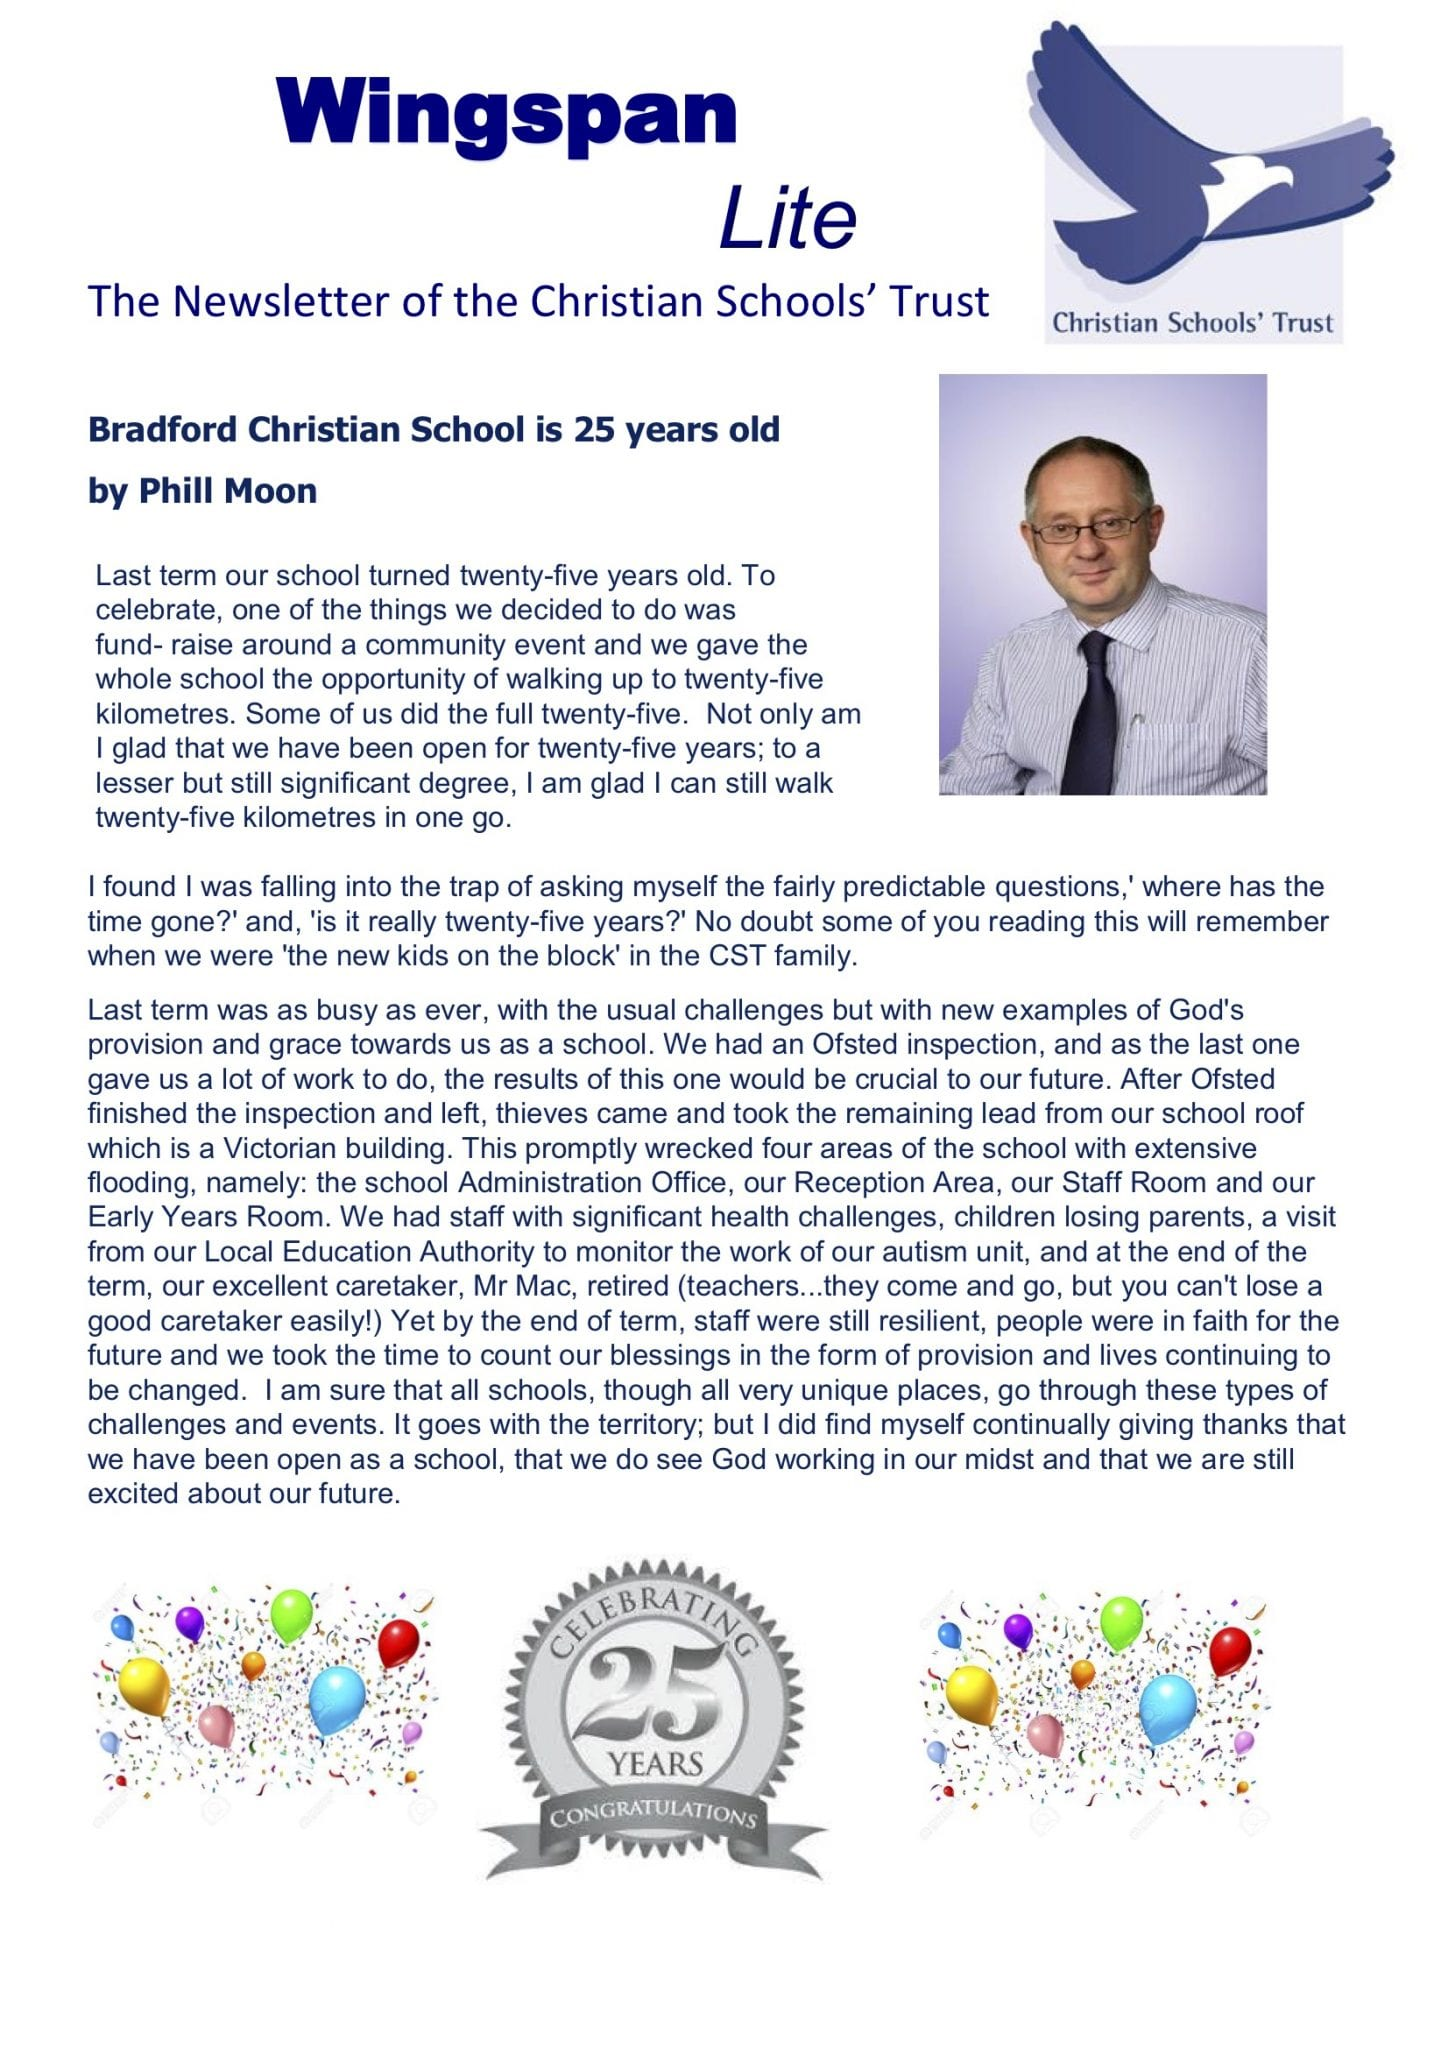 Bradford Christian School - 25 Year Celebration